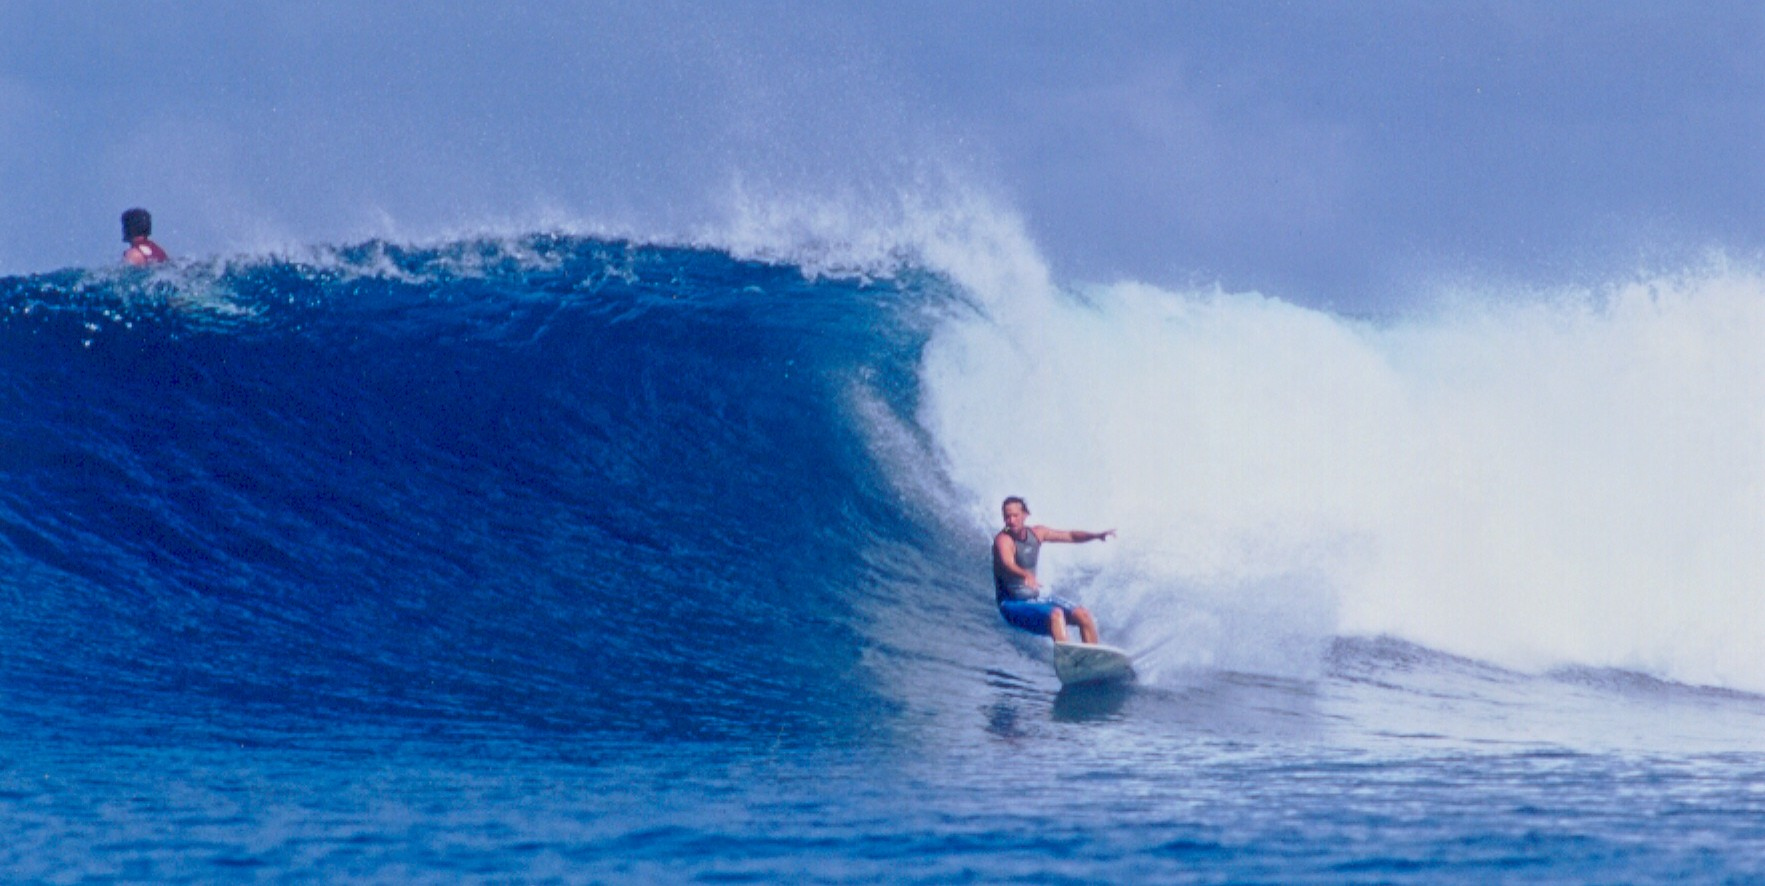 seedicksurf.com - Daily Hot shot - Maui Surf Report